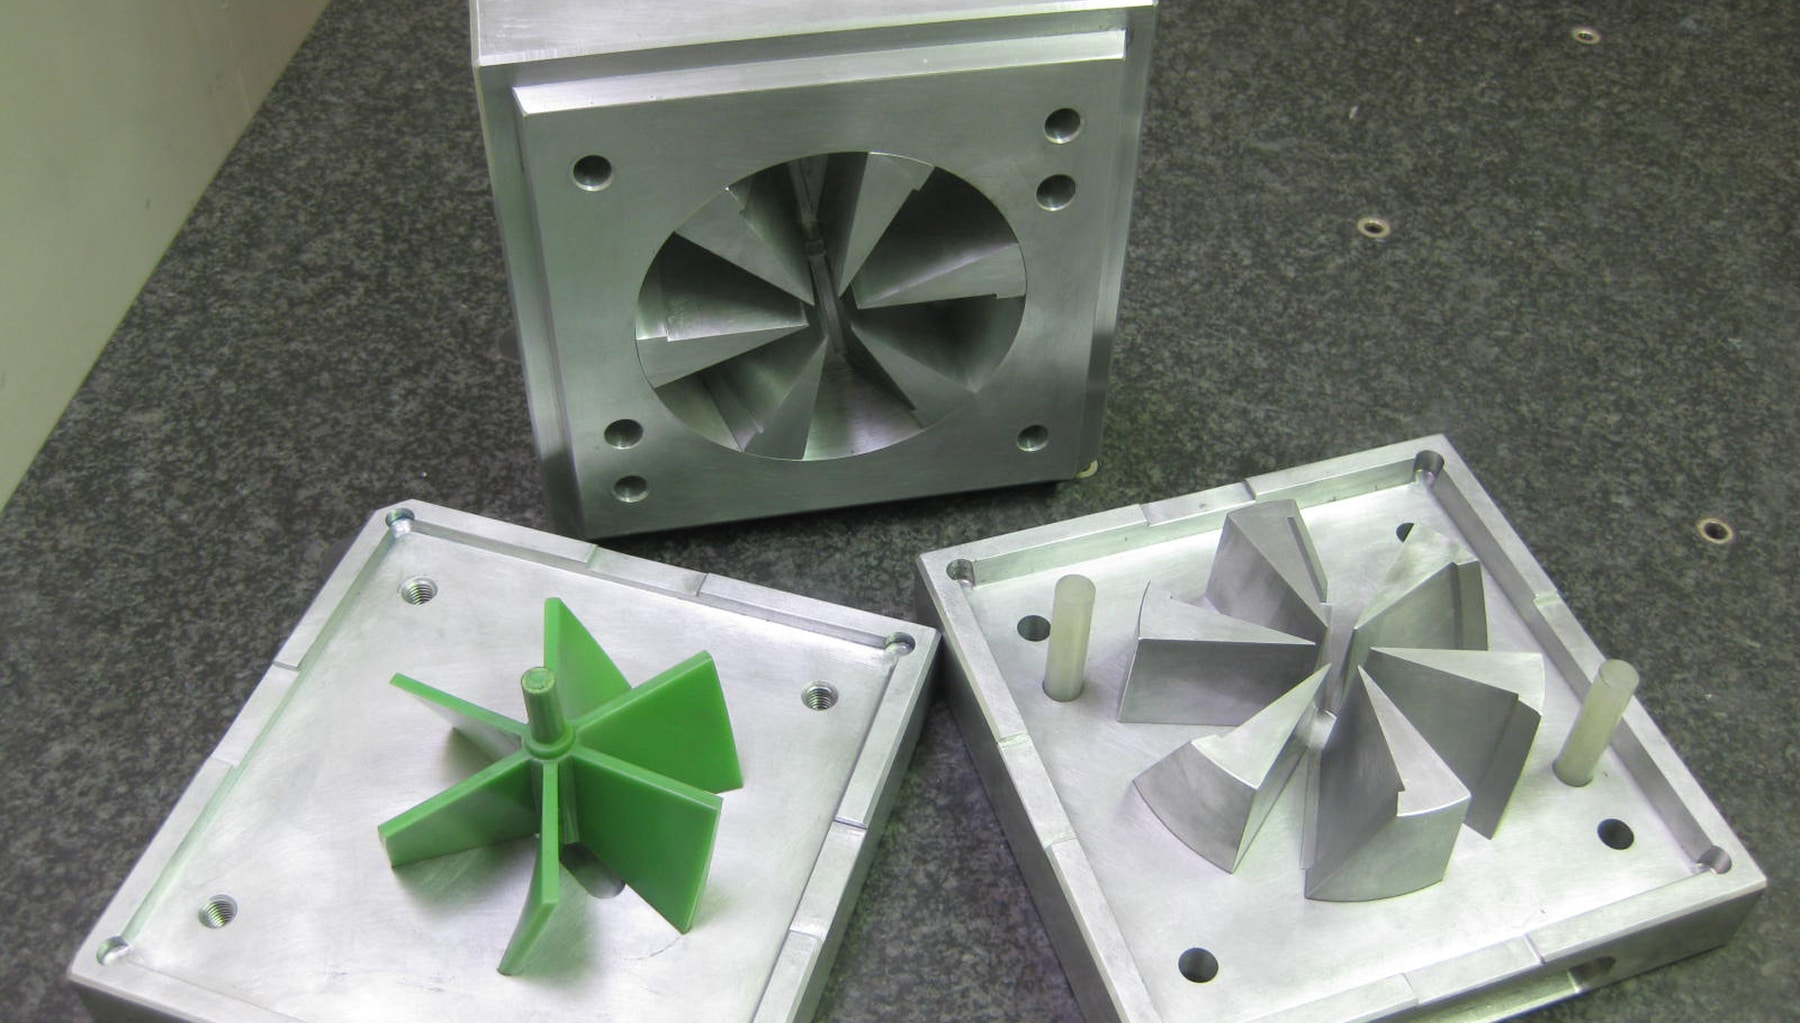 Rapid Injection Molding Article Image